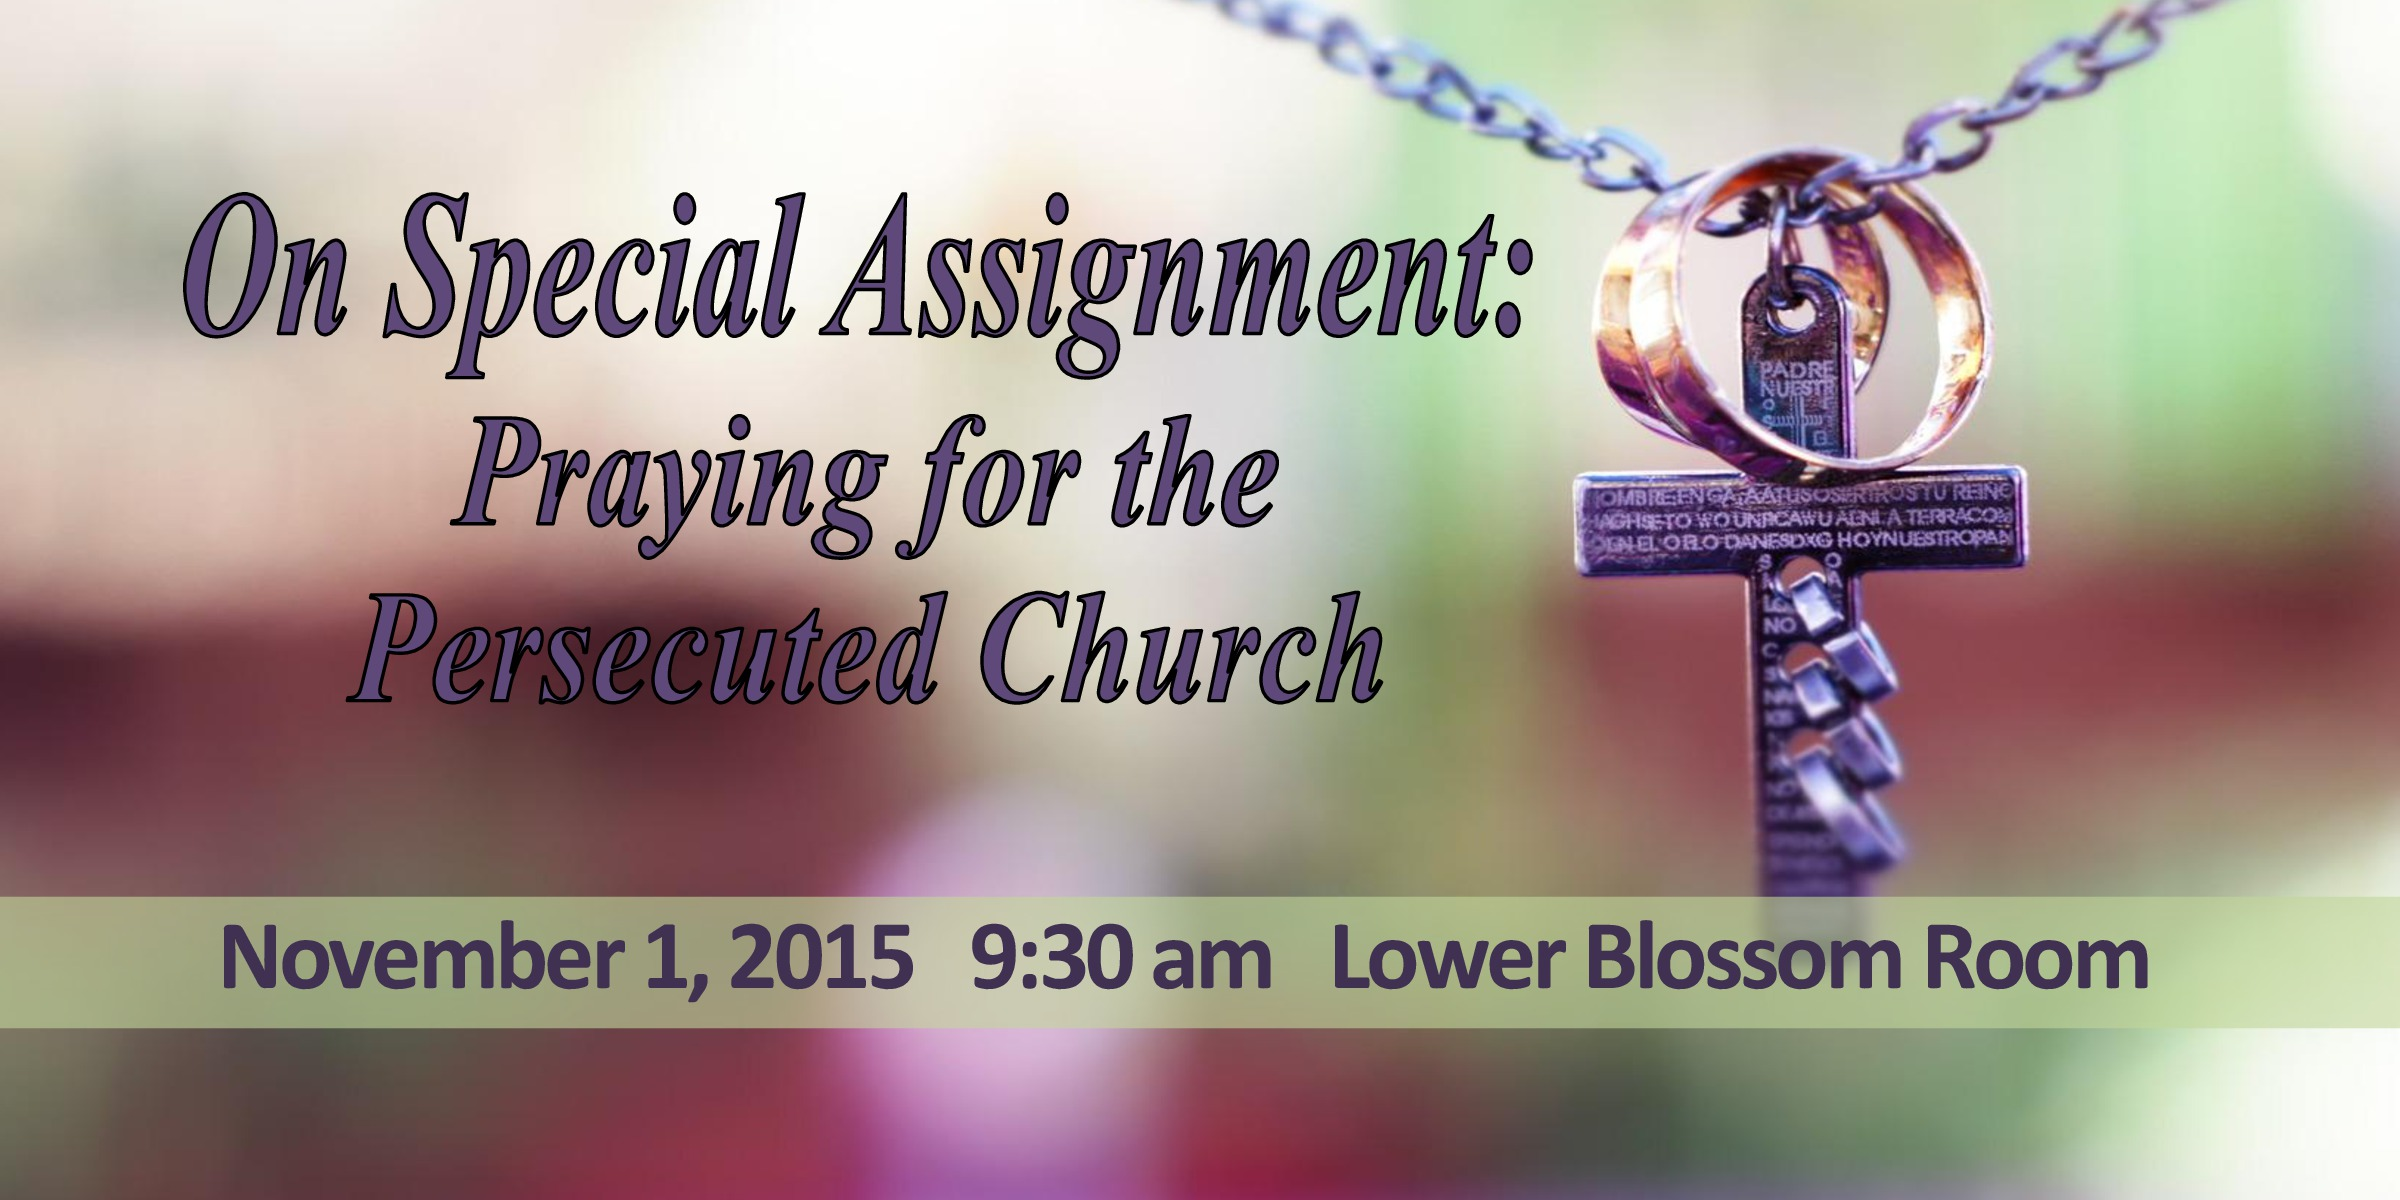 On Special Assignment: Praying for the Persecuted Church